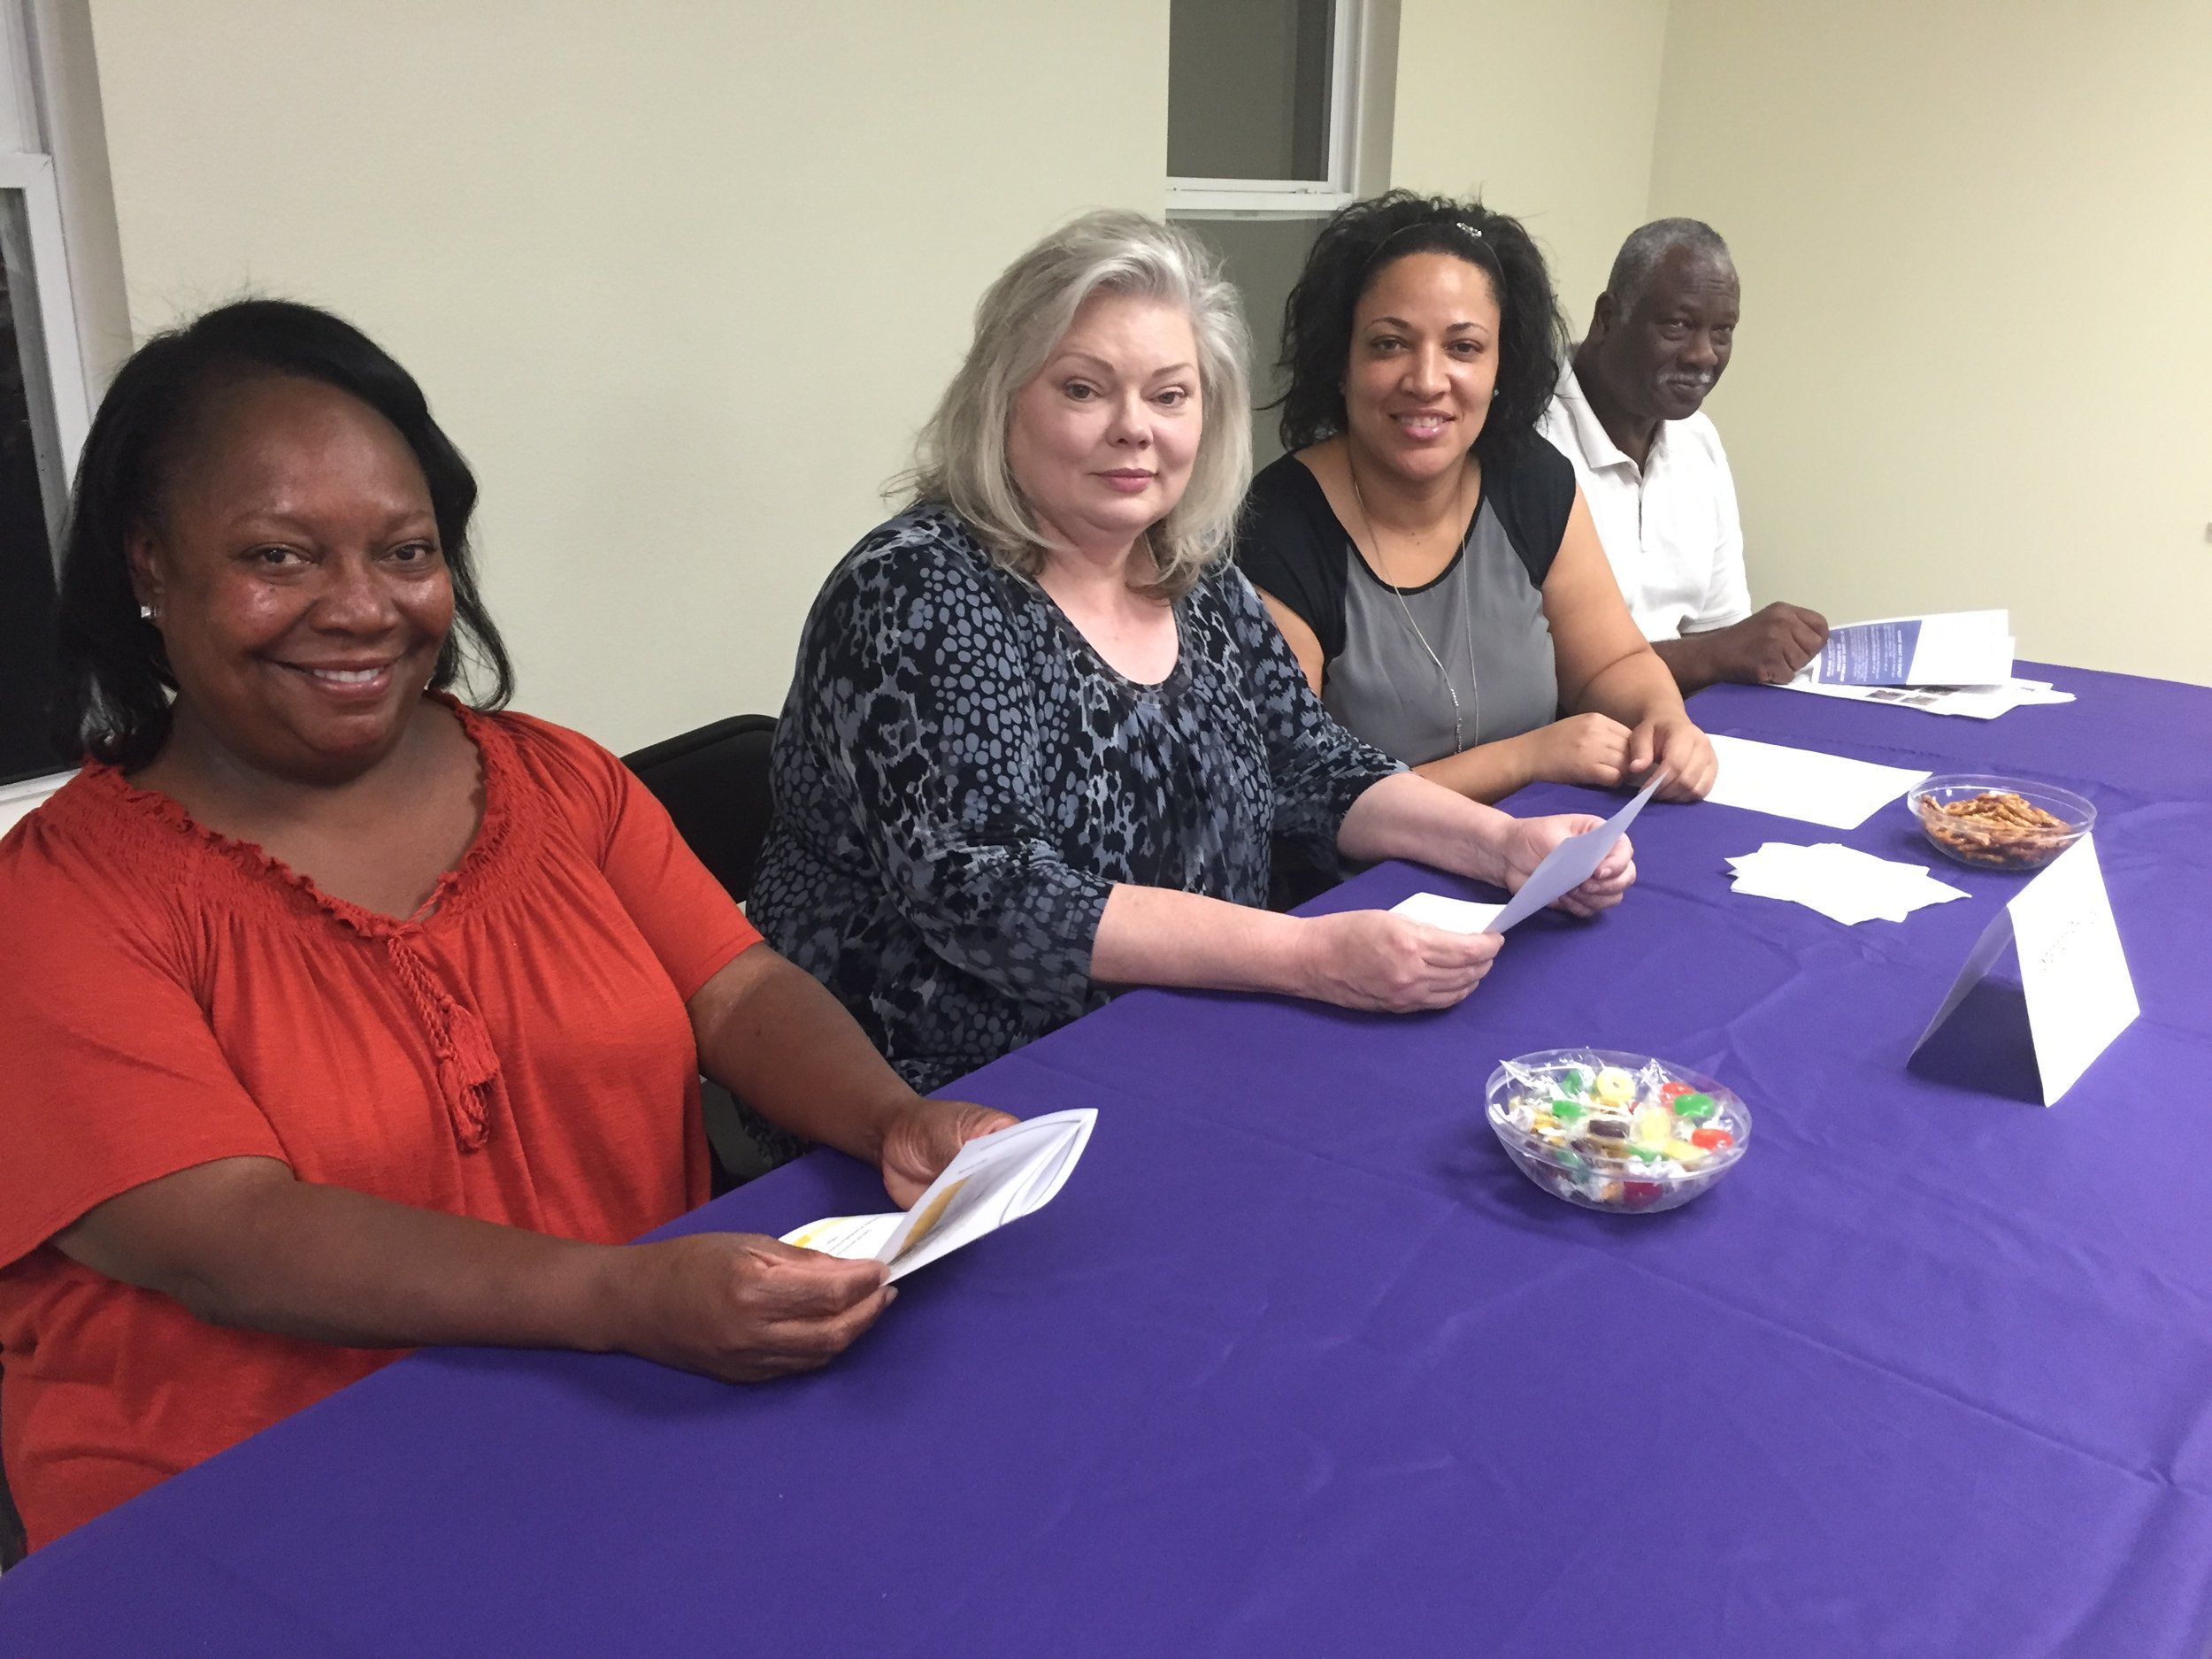 Concerned Citizens of Huttig President Van Page (L) with Union County Clerk Shannon Phillips, Strong Community Leadership Alliance President Edwina Howard, and CCLA member Art Henry inform voters from Strong and Huttig.